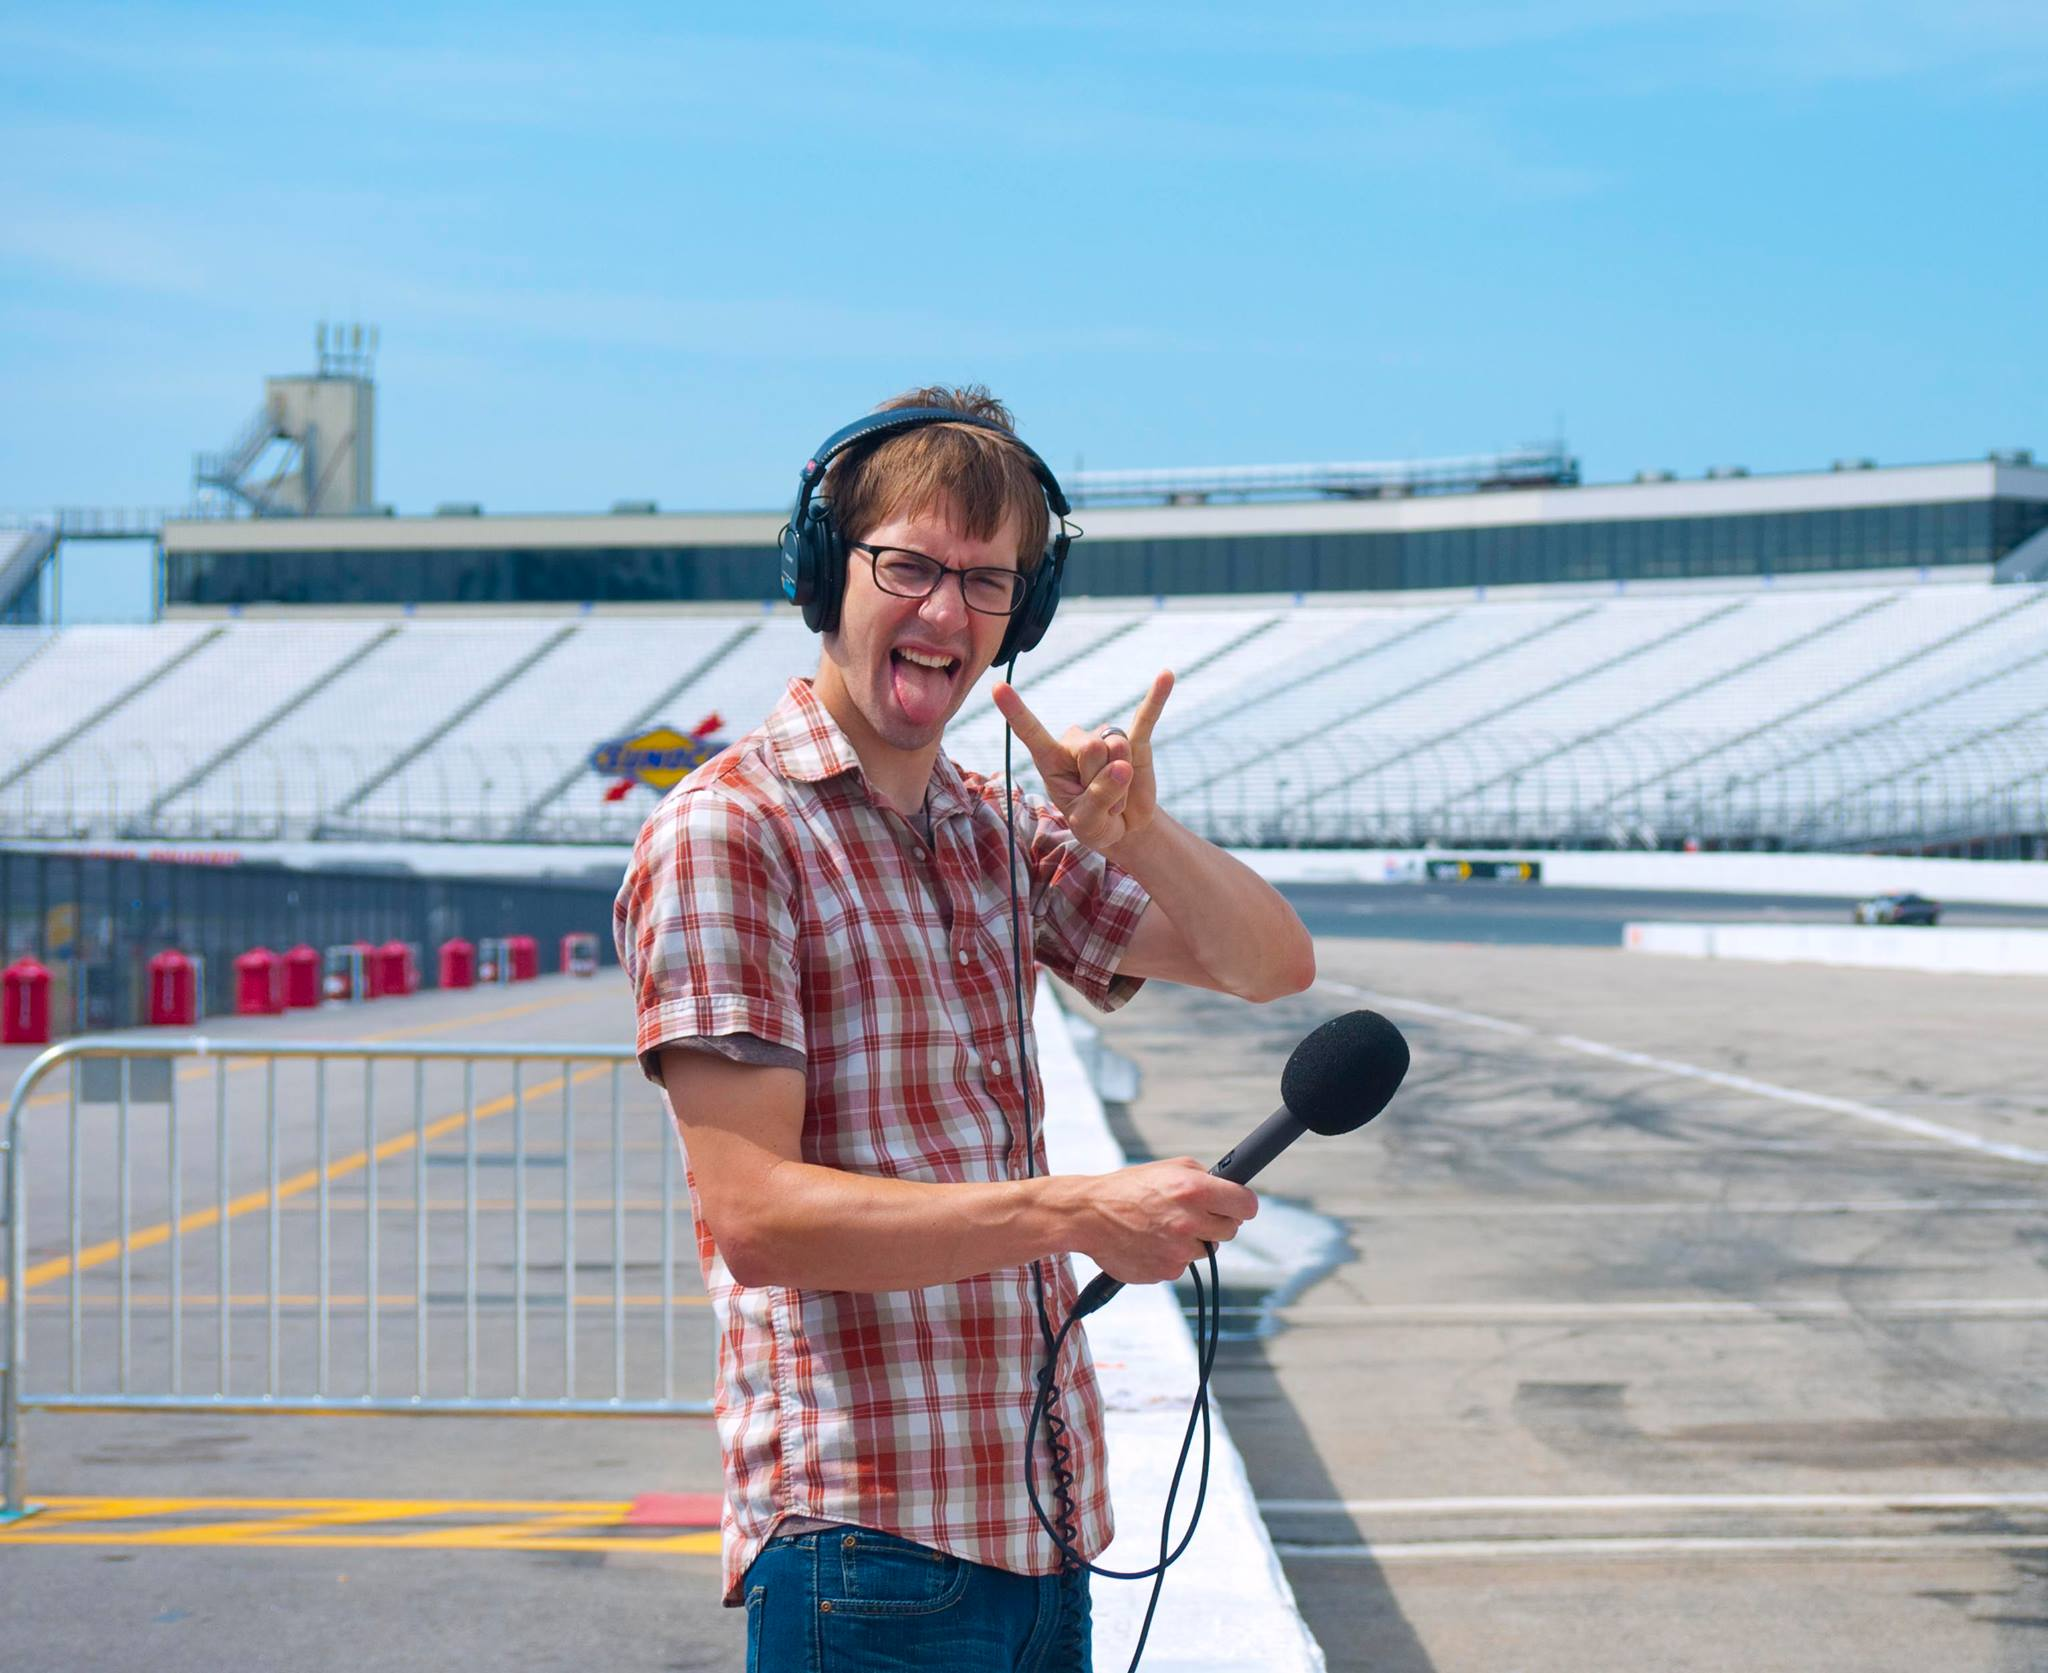 Producer Taylor Quimby records audio for a story at the Loudon Speedway